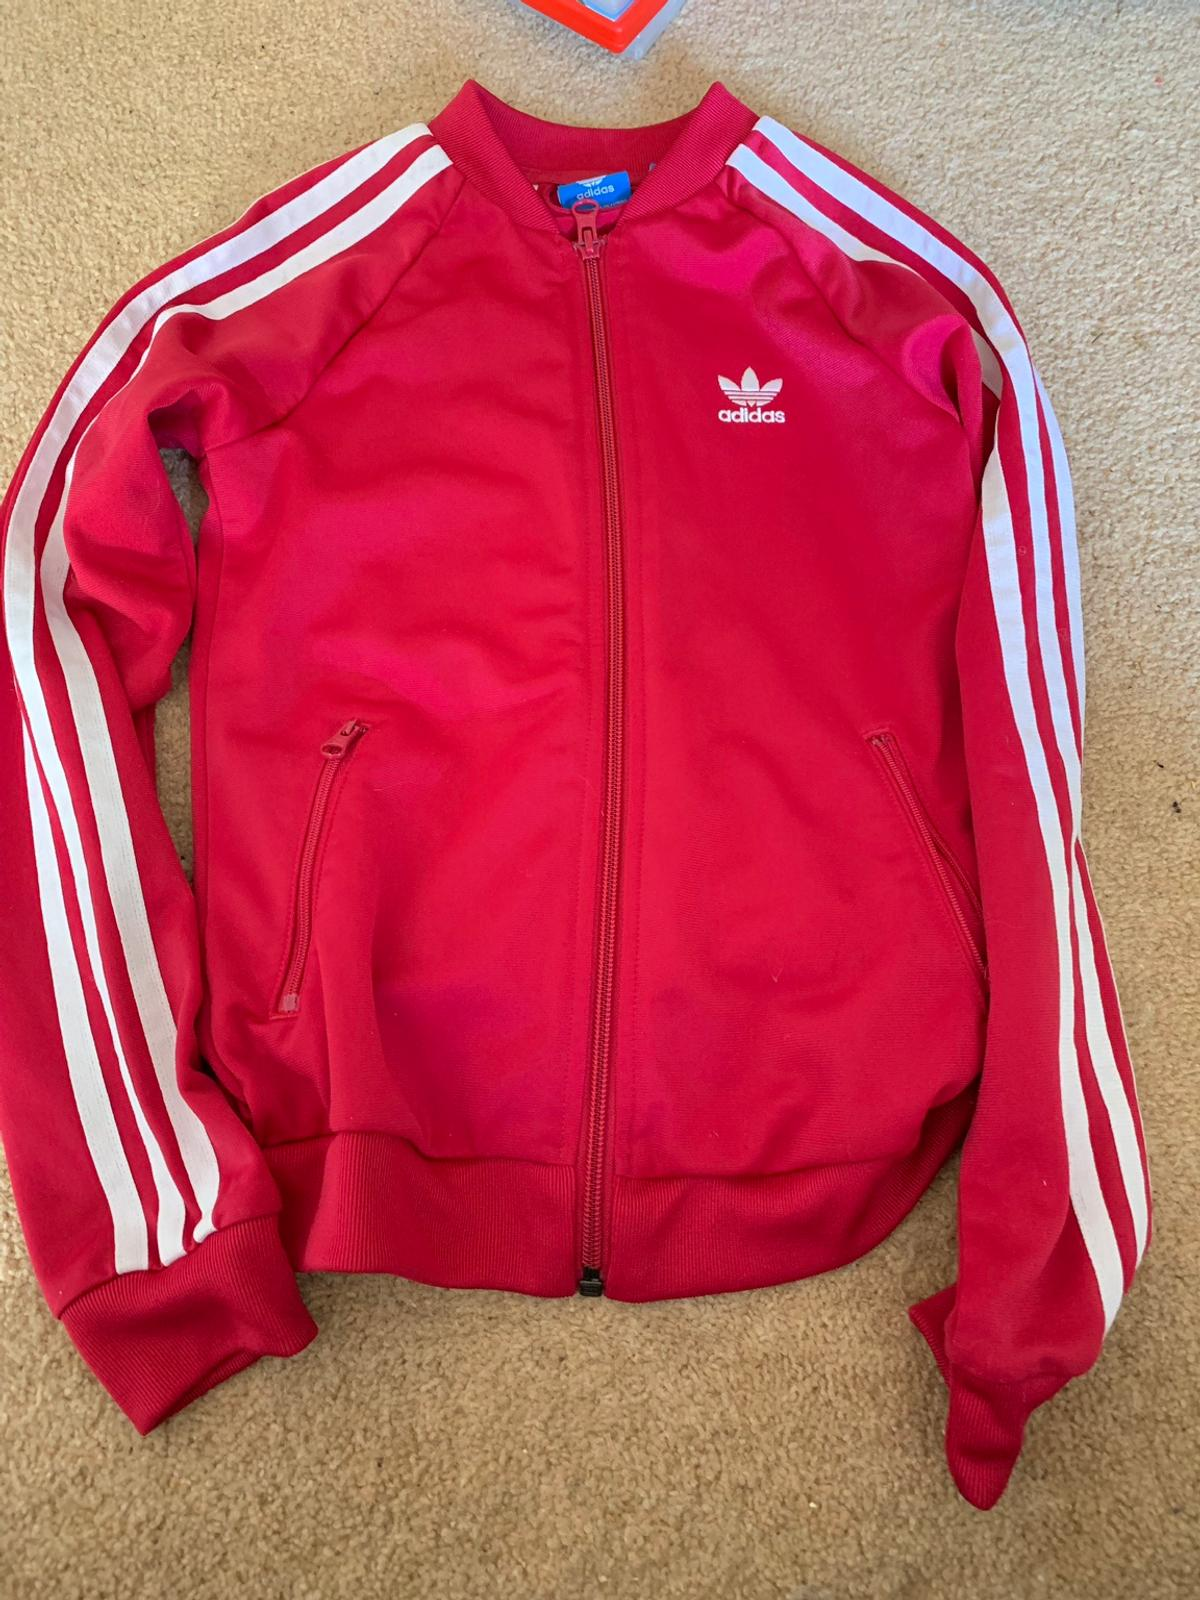 Child's Red Adidas Jacket